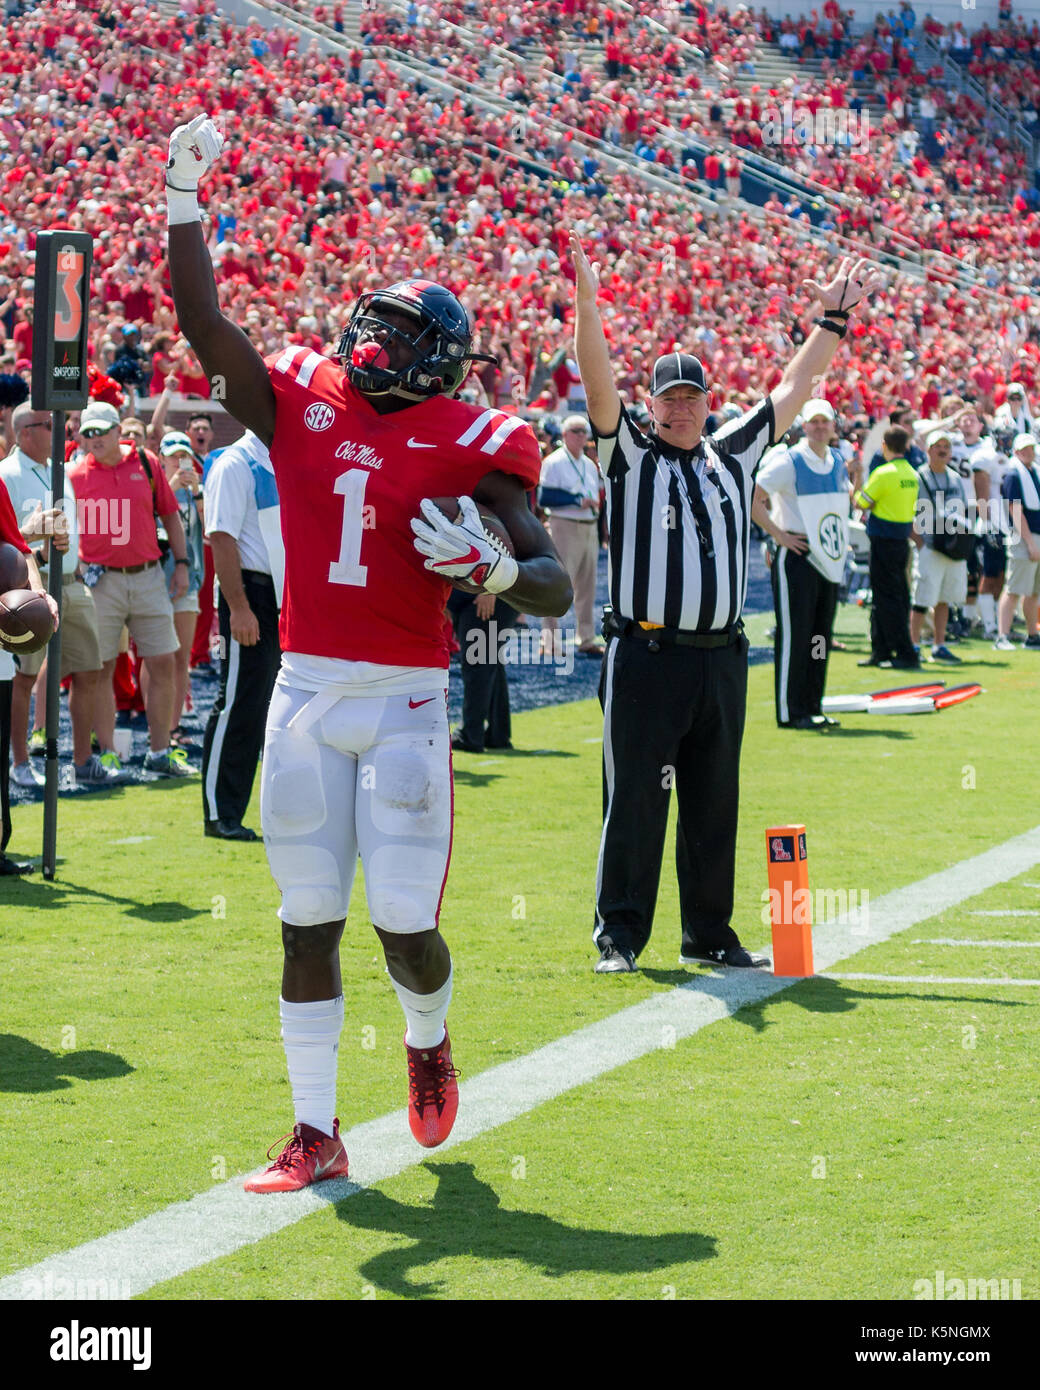 Oxford, USA.  9th Sept 2017. University of Mississippi Wide Receiver A.J. Brown (1)  celebrates scoring a touchdown during the third quarter at Vaught-Hemingway Stadium in Oxford, Mississippi,  on Saturday, September 9, 2107.  Credit: Kevin Williams/Alamy Live News. - Stock Image